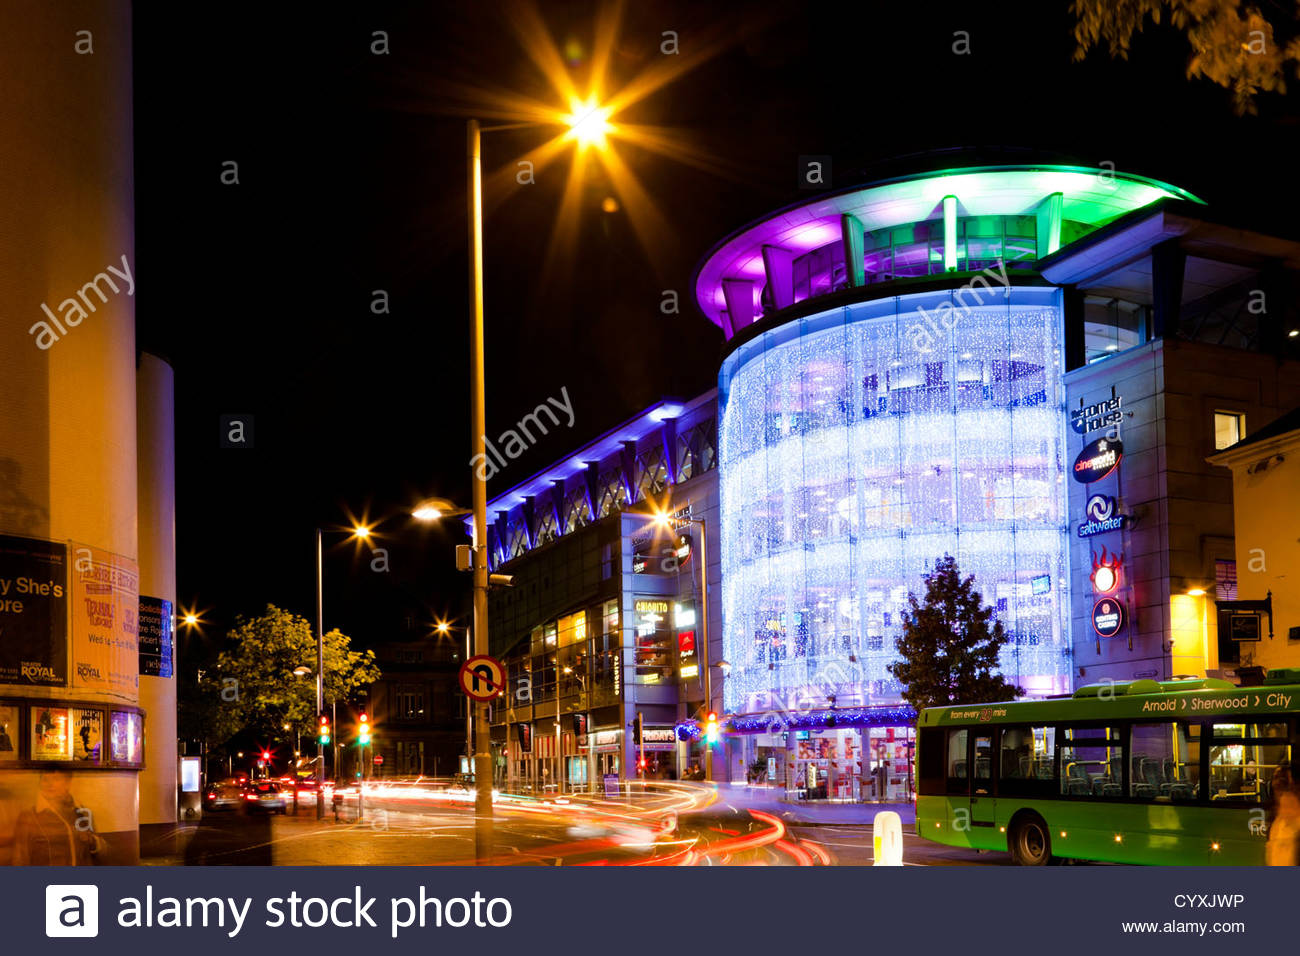 Corner House cinema with its lights on at night in Nottingham, England, UK - Stock Image